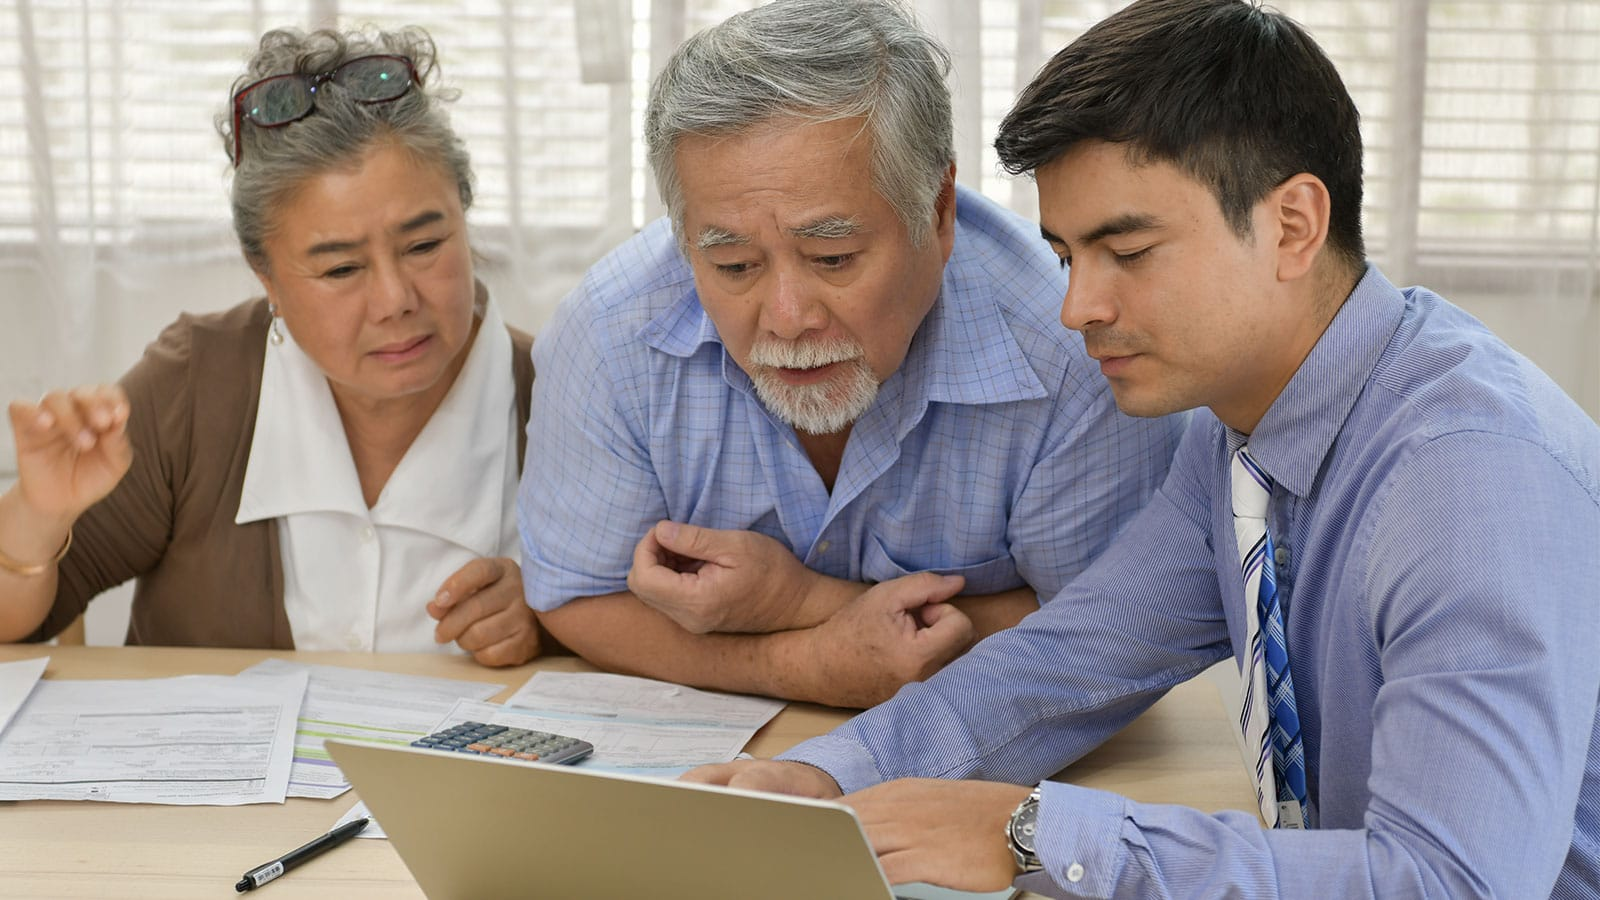 Financial consultant assisting senior couple with their taxes.